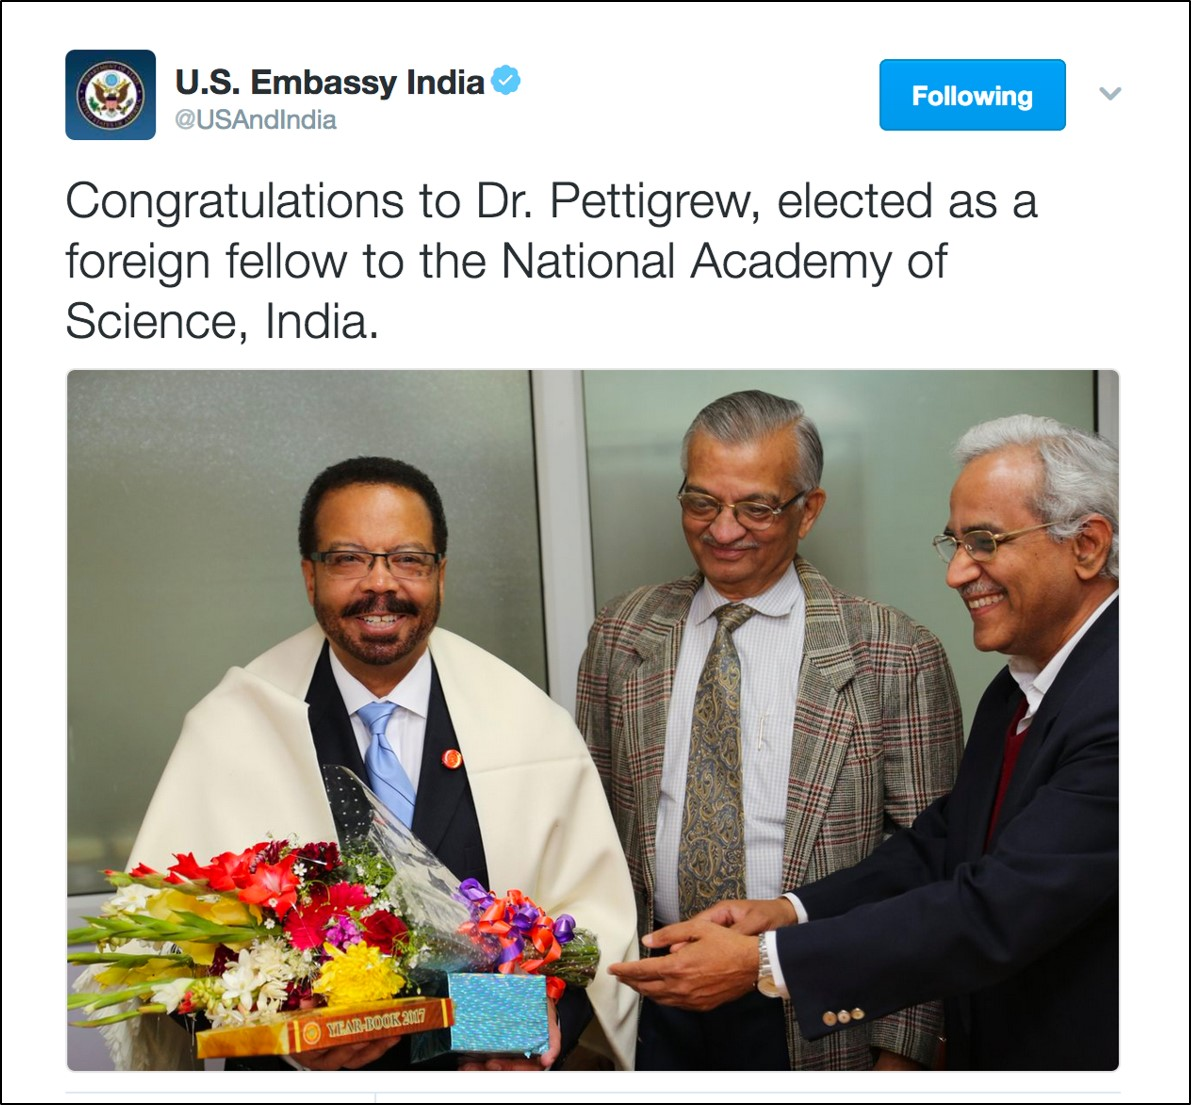 Image of a tweet from the U.S. Embassy in India with Dr. Pettigrew, NIBIB Director being inducted into Academy of Sciences, India.